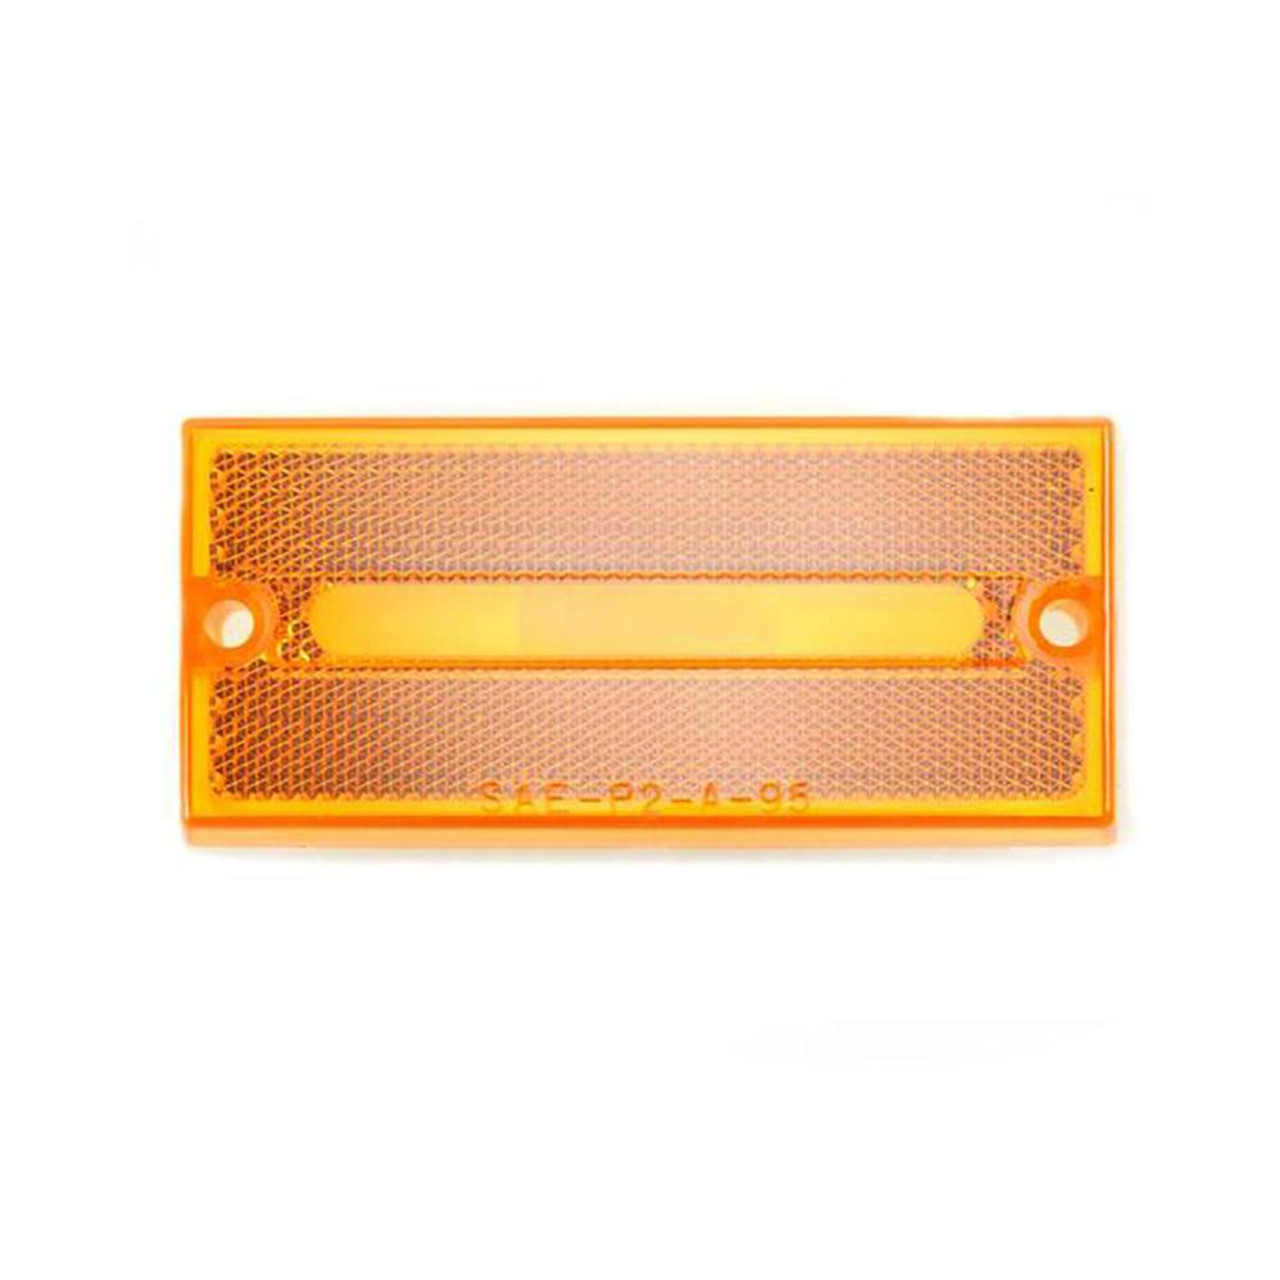 Housing - Amber reflex lens and ABS base only